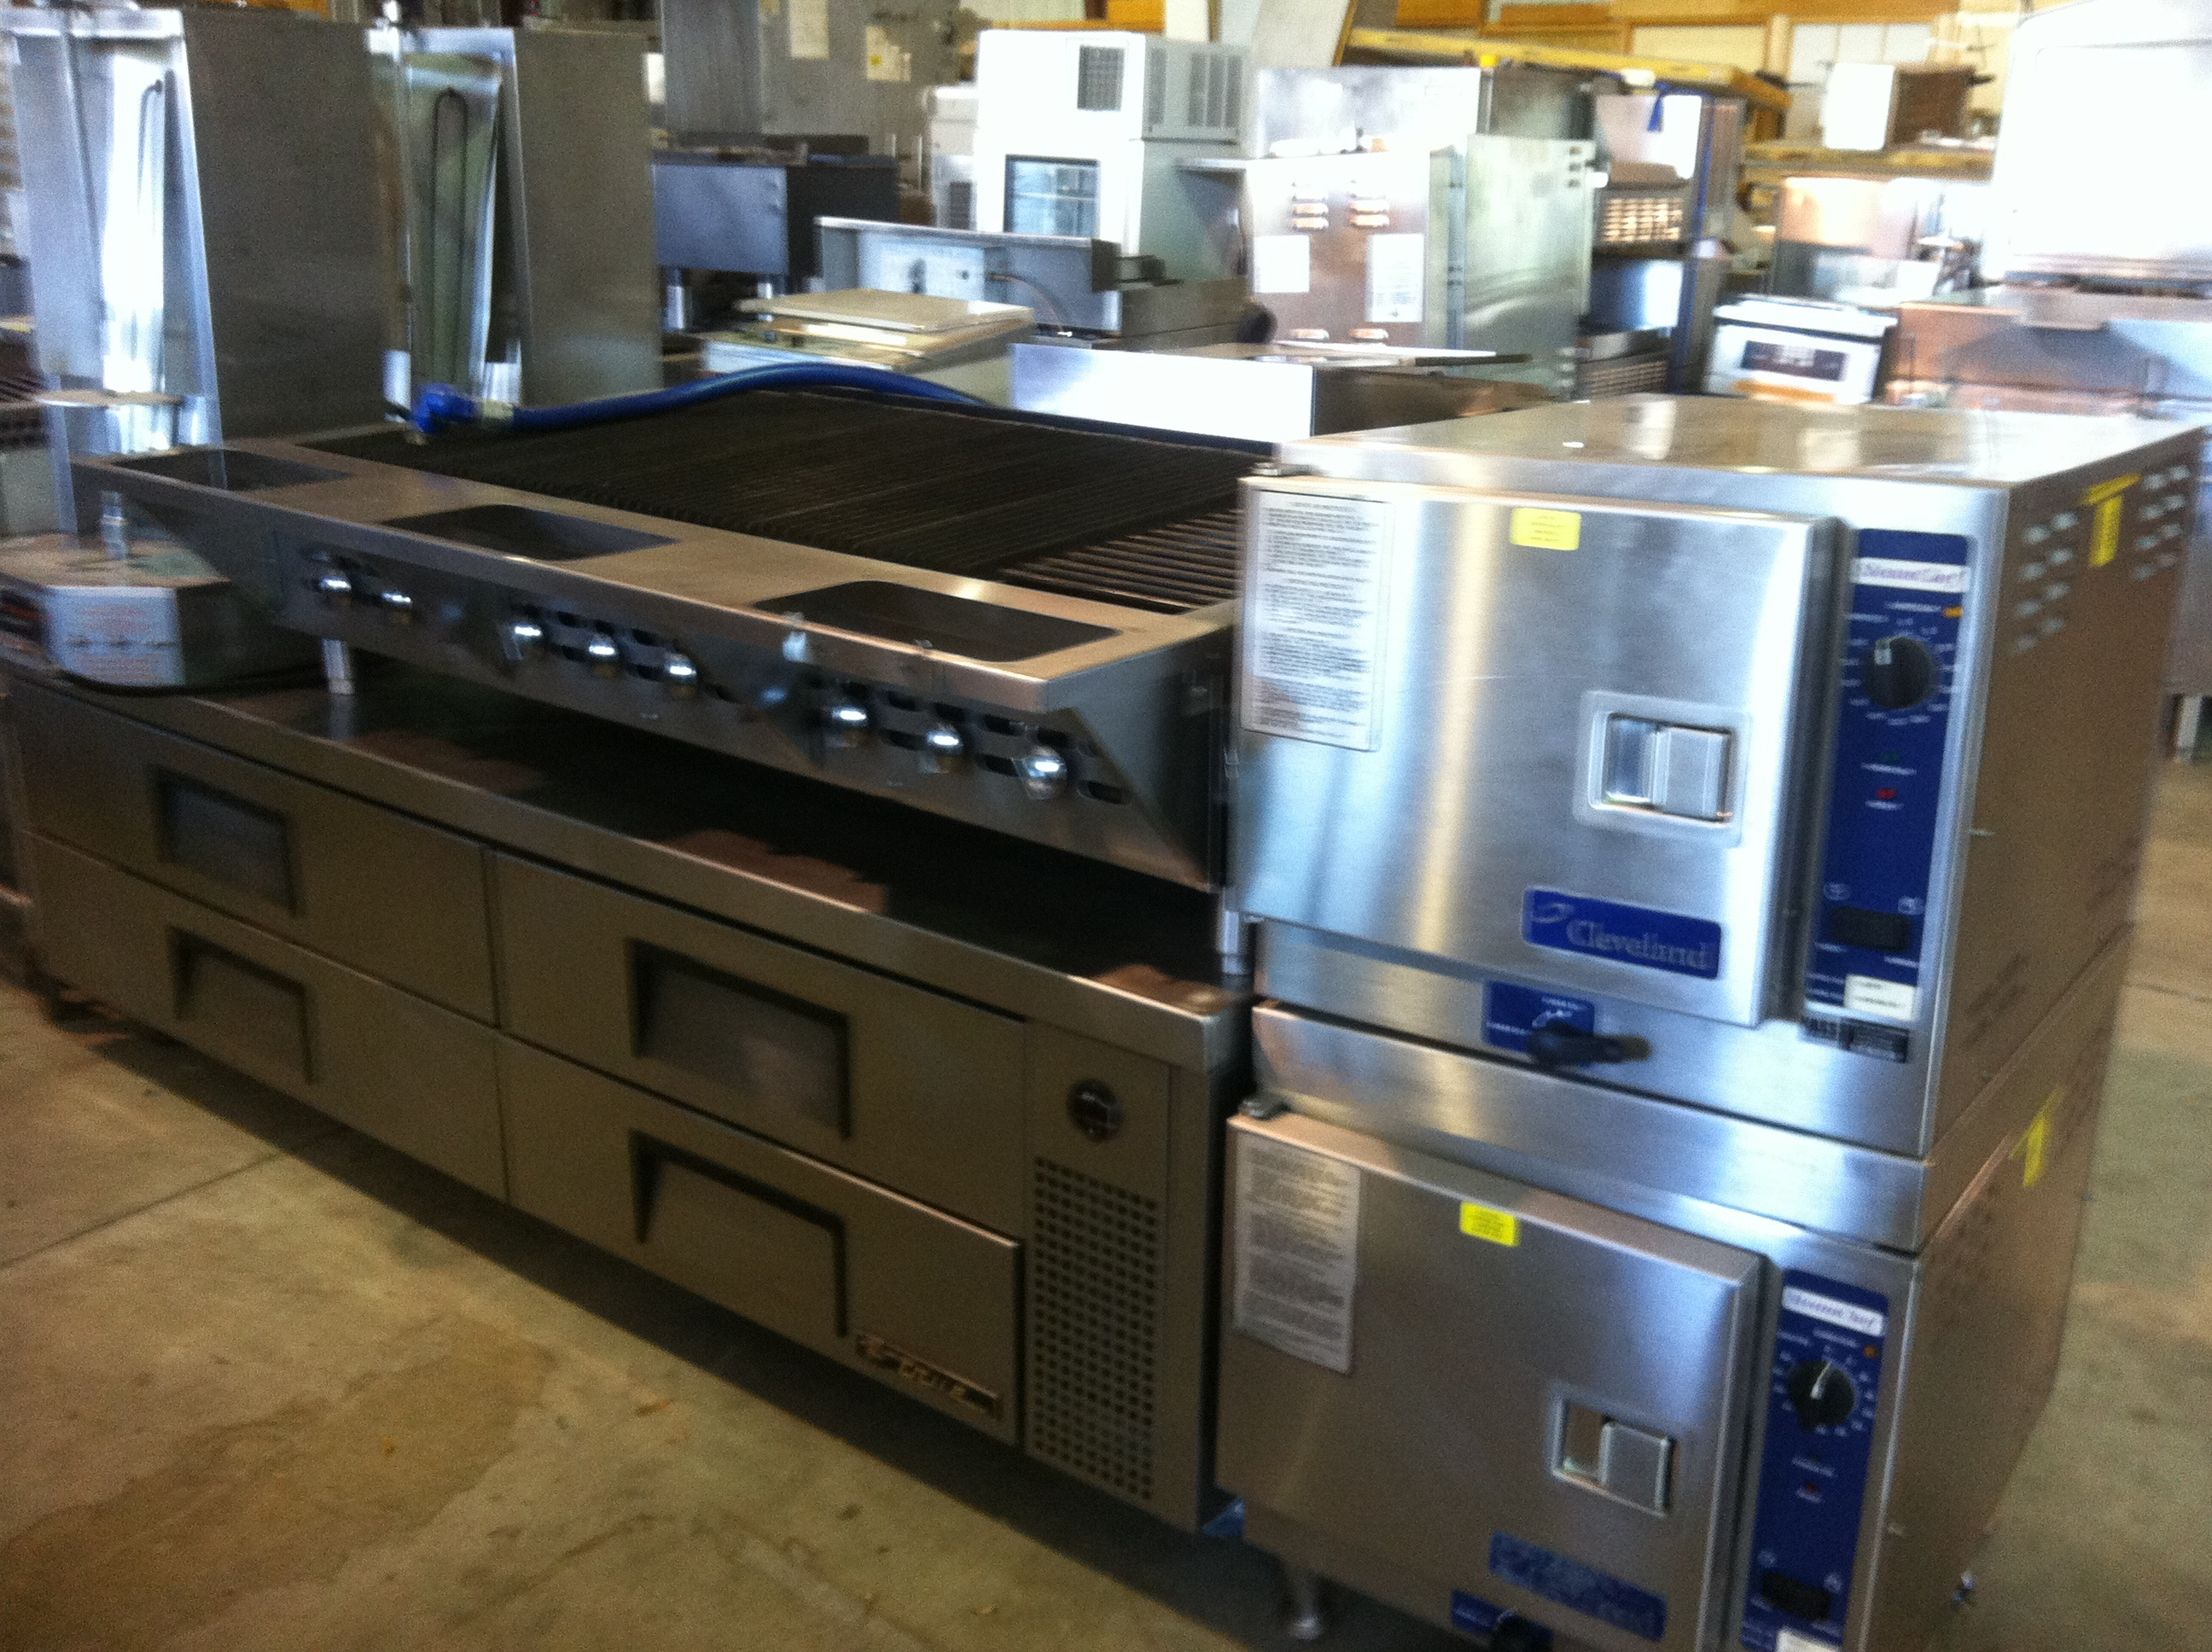 Kitchen equipment for churches daycares retirement homes for Equipement cafe